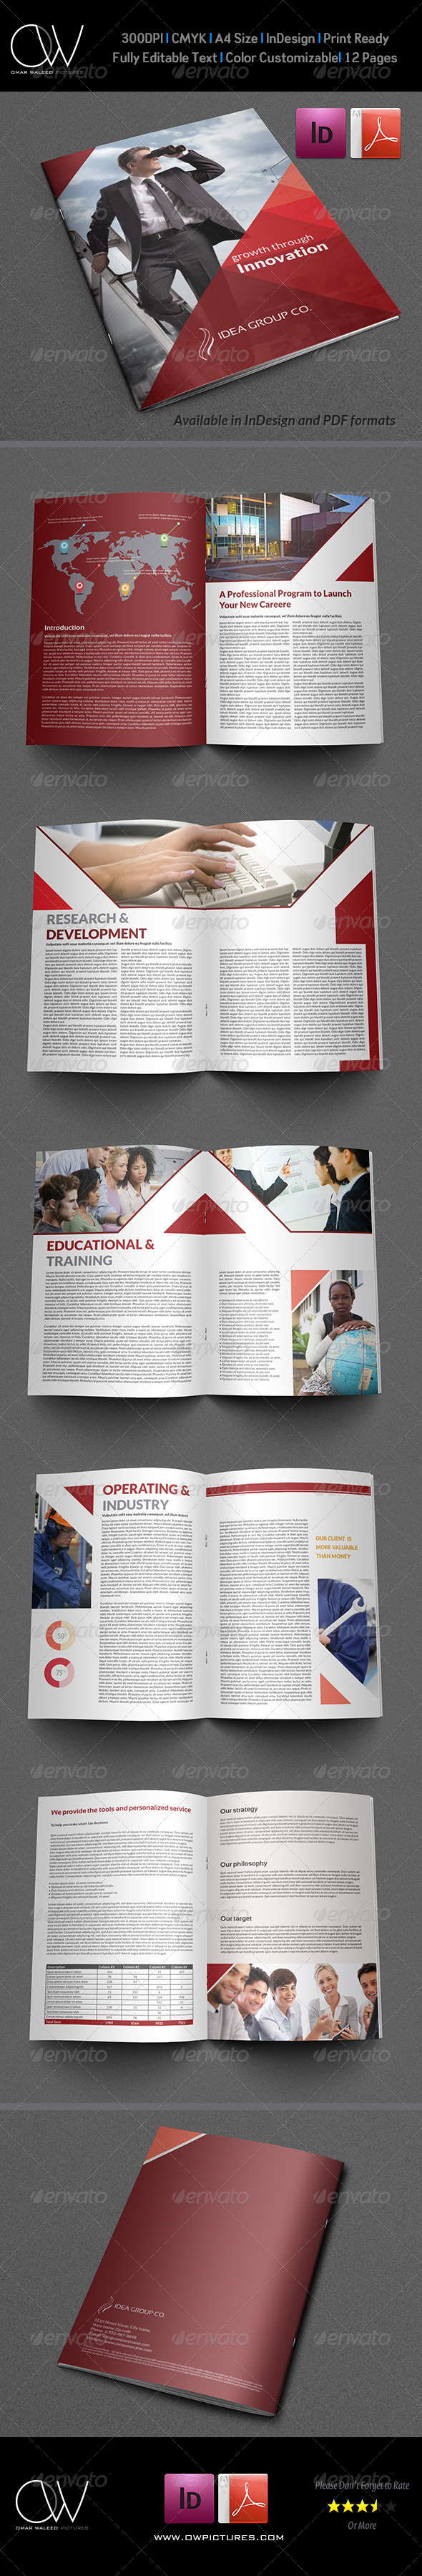 Company Brochure Template Vol Pages By OWPictures - Brochure template for pages